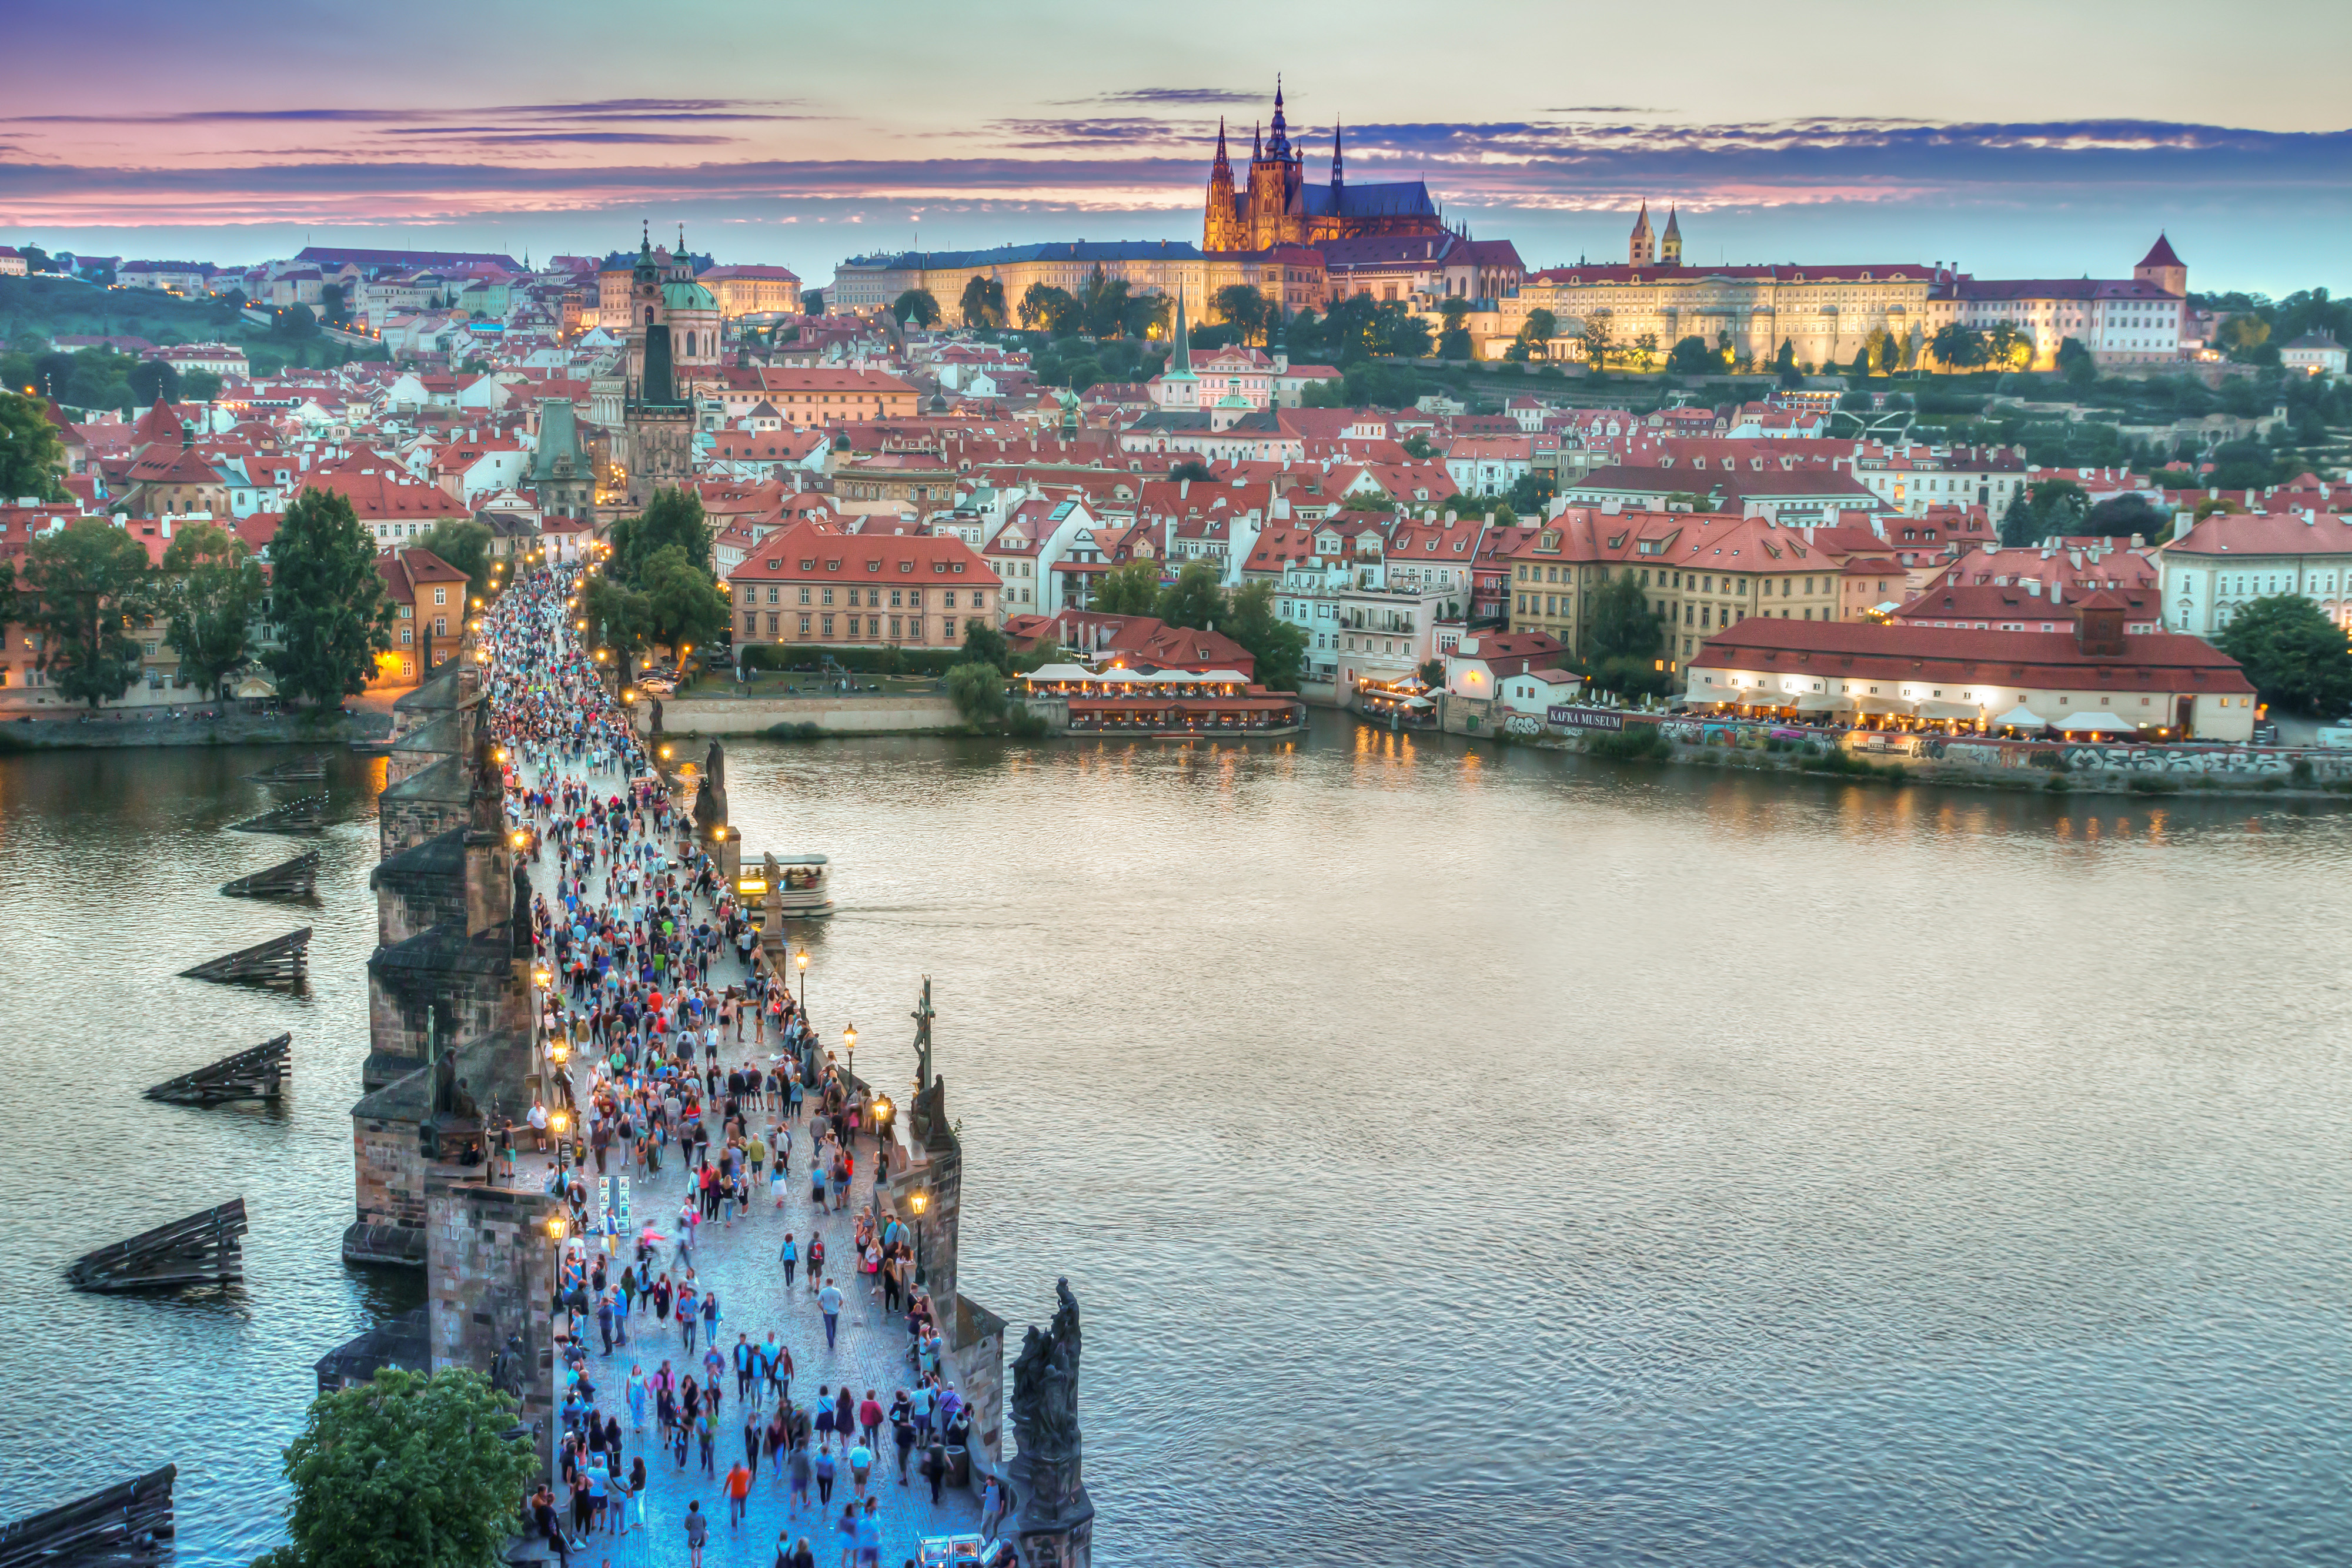 Evening in the historic center of Prague and view on the Charles